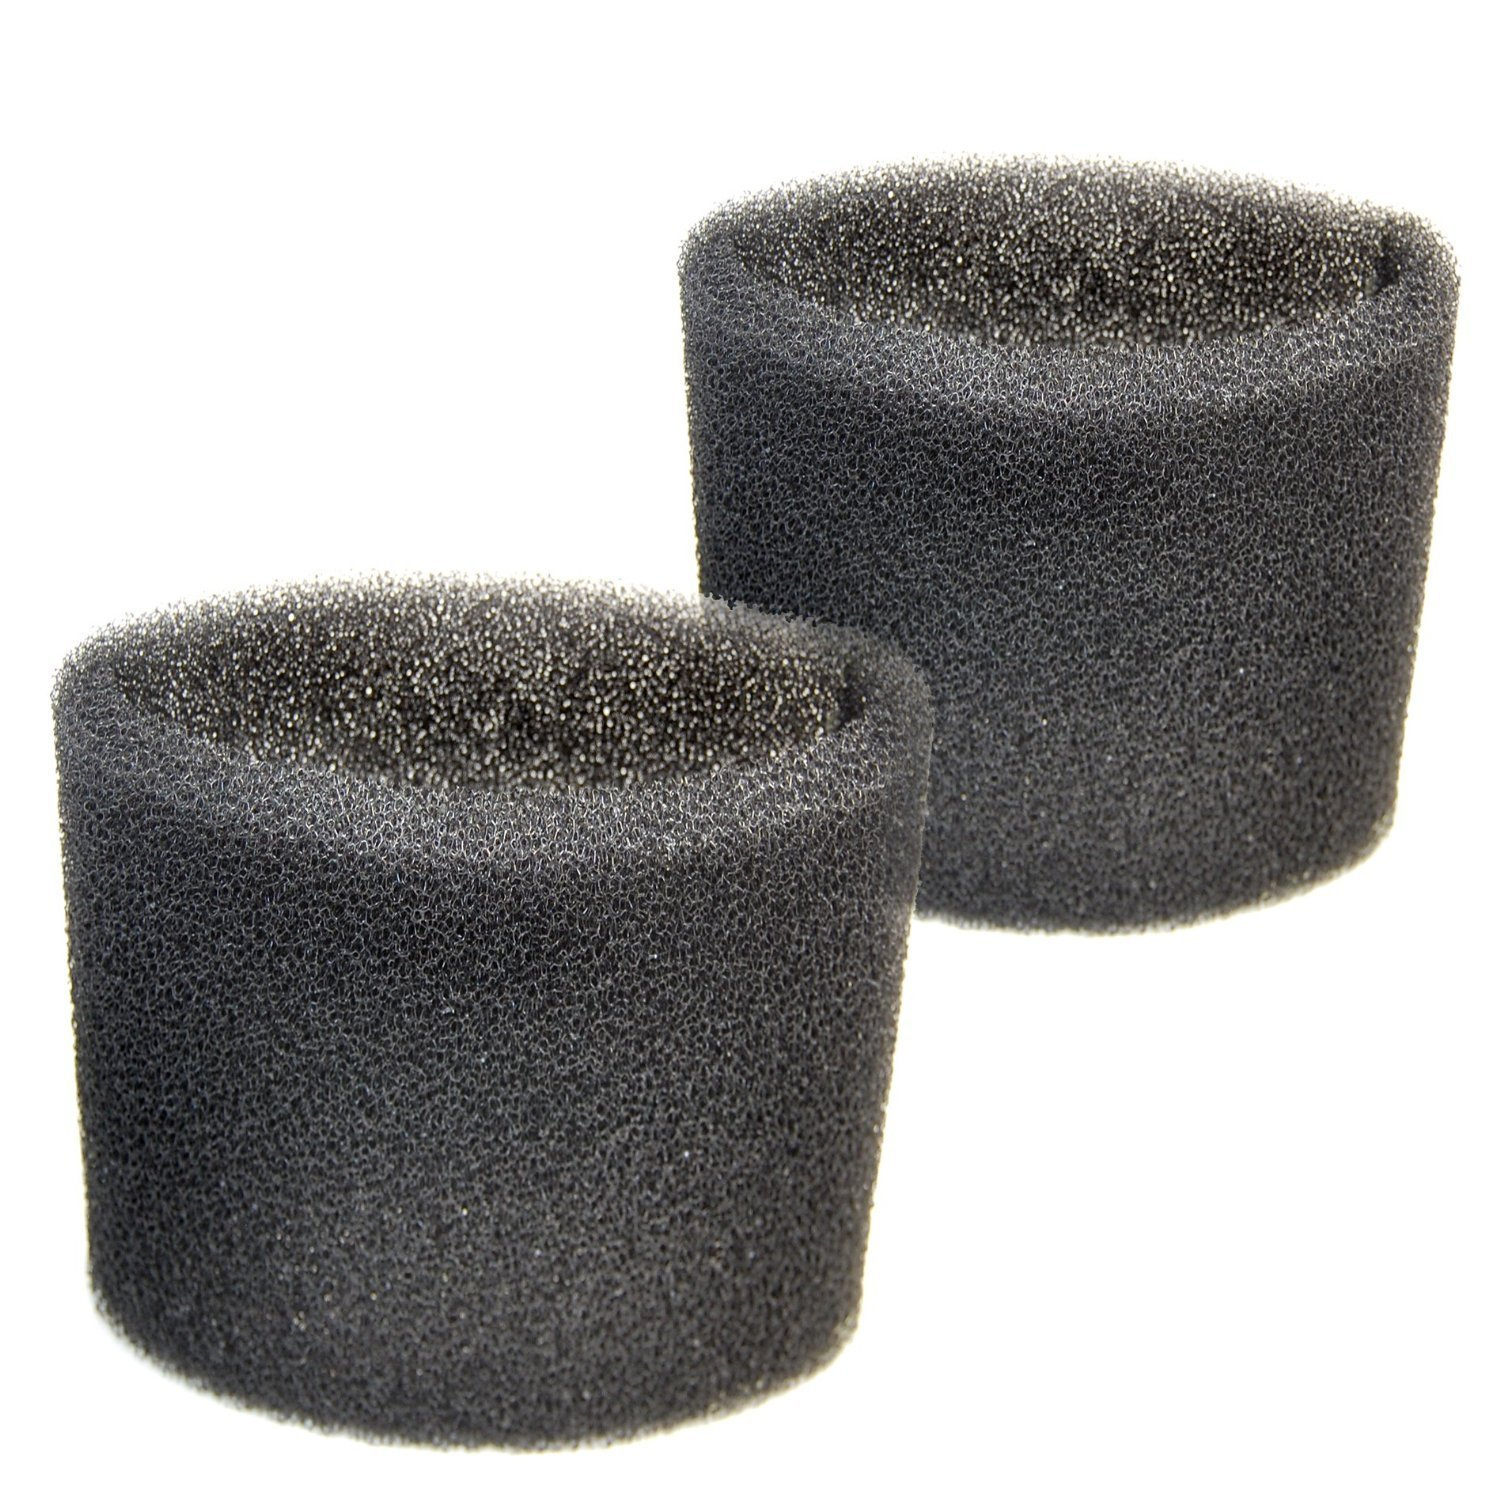 Amazon.com - HQRP 2-Pack Cartridge Filter and 2-Pack Foam Sleeve for Shop-Vac 903-04-00 9030400 90304 903-50-00 9058500 905-85-00 90585 Vacuum Cleaner ...